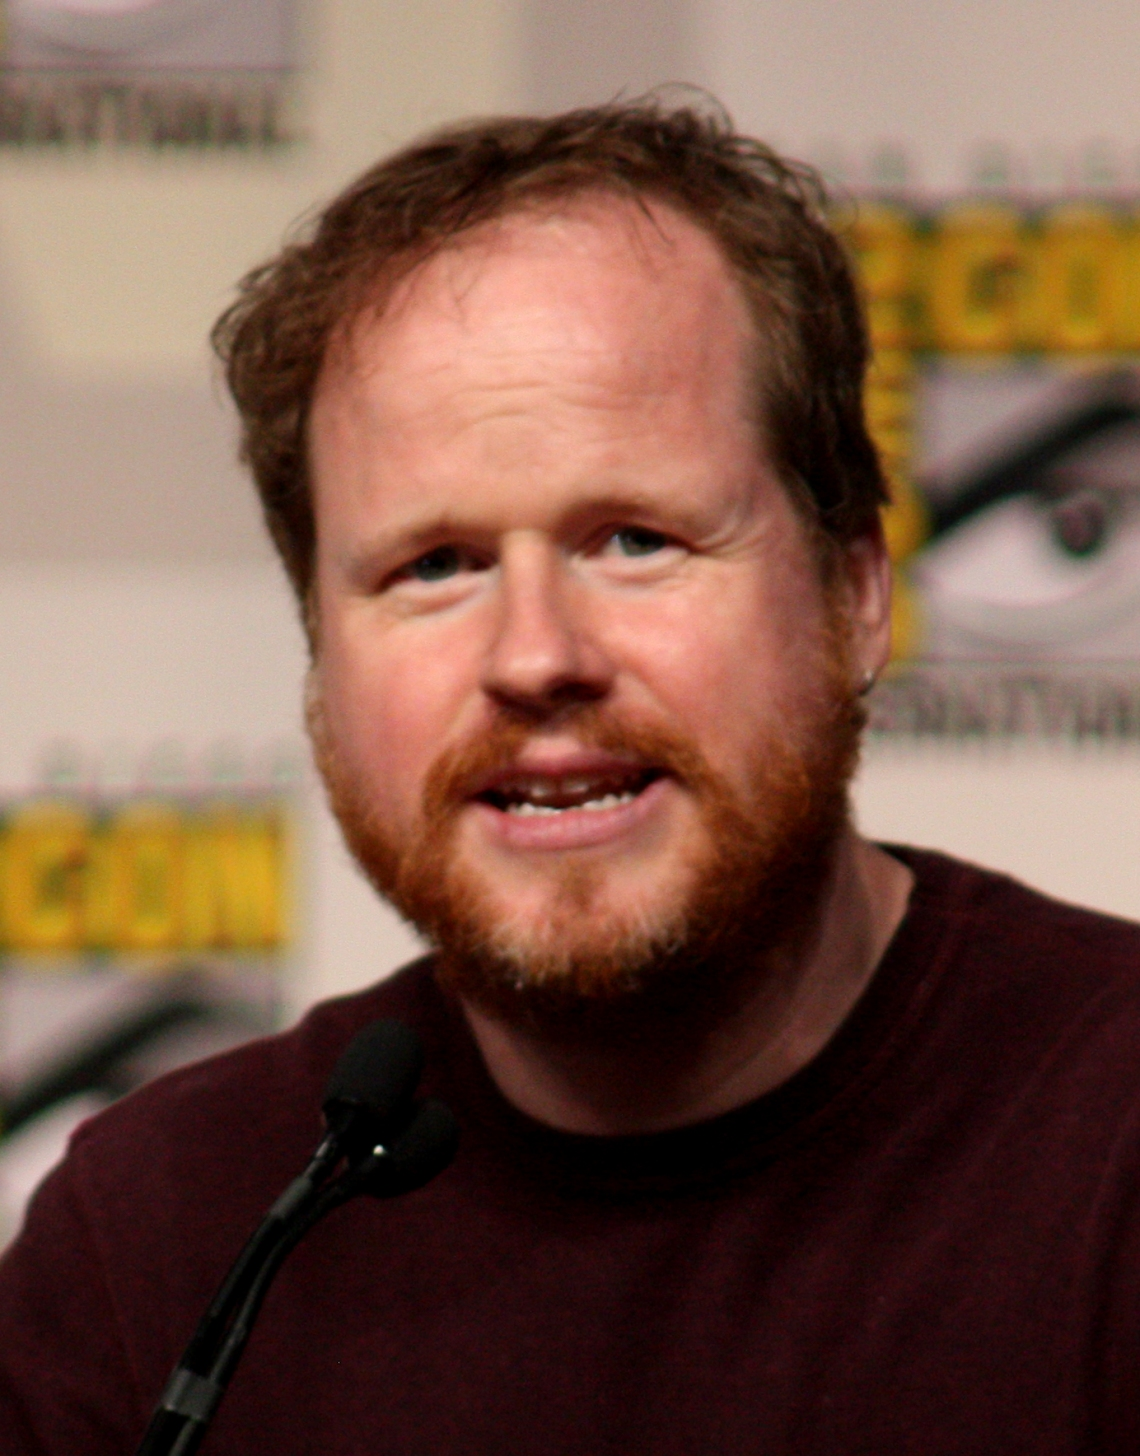 Joss Whedon at Comic Con